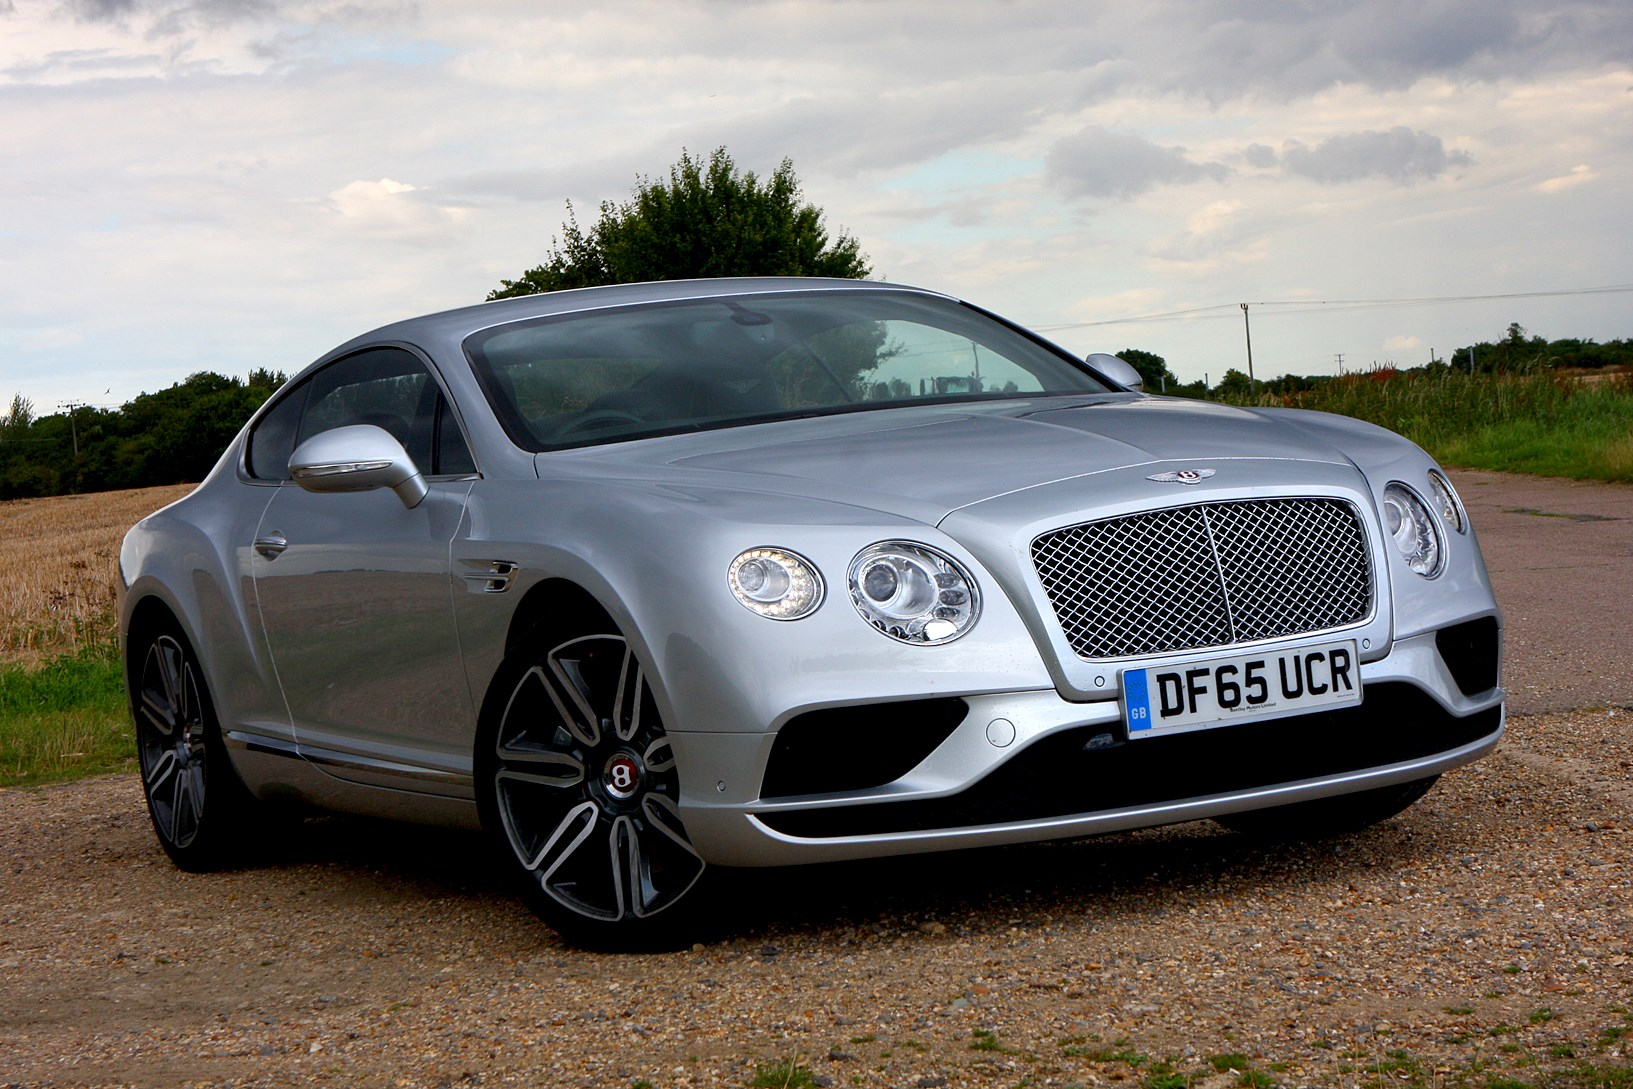 bentley mulsanne autotrader with 2016 Bentley Mulsanne Review Ratings Specs Prices And on 2017 Bentley Mulsanne and 2017 Bentley Flying Spur V8 S  Geneva Auto Show 250548 in addition The Car That Killed Pontiac The 2004 2006 Gto Gearheads additionally Queen Elizabeth Bentley Mulsanne Sale Bidding War Interest Pour Uk Us Australia 1553635 as well Classic Mercedes moreover Bentley Car Cost.